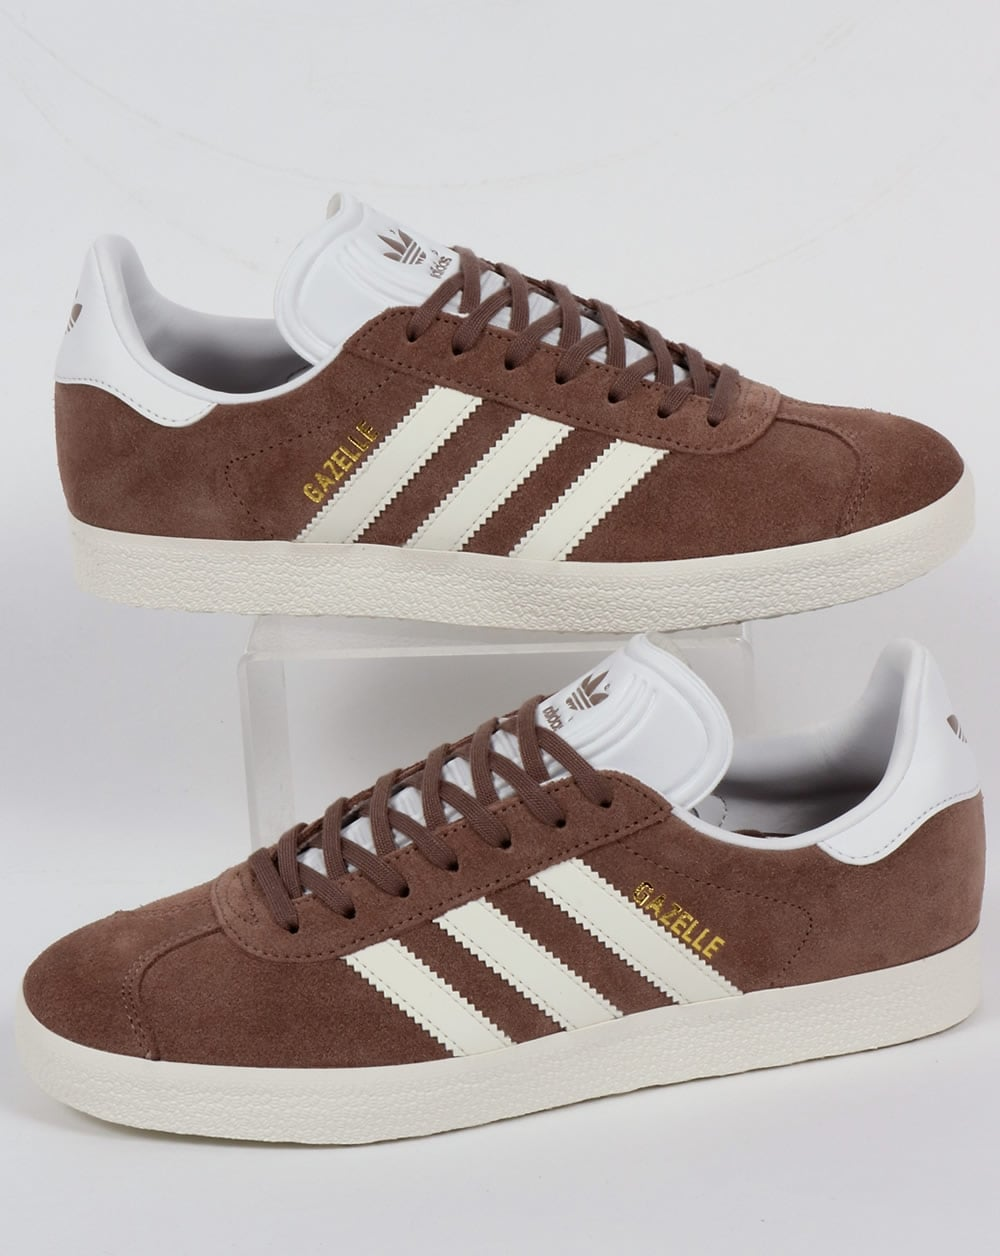 Buy adidas gazelle brown suede   OFF51% Discounted 69189d94ce6f